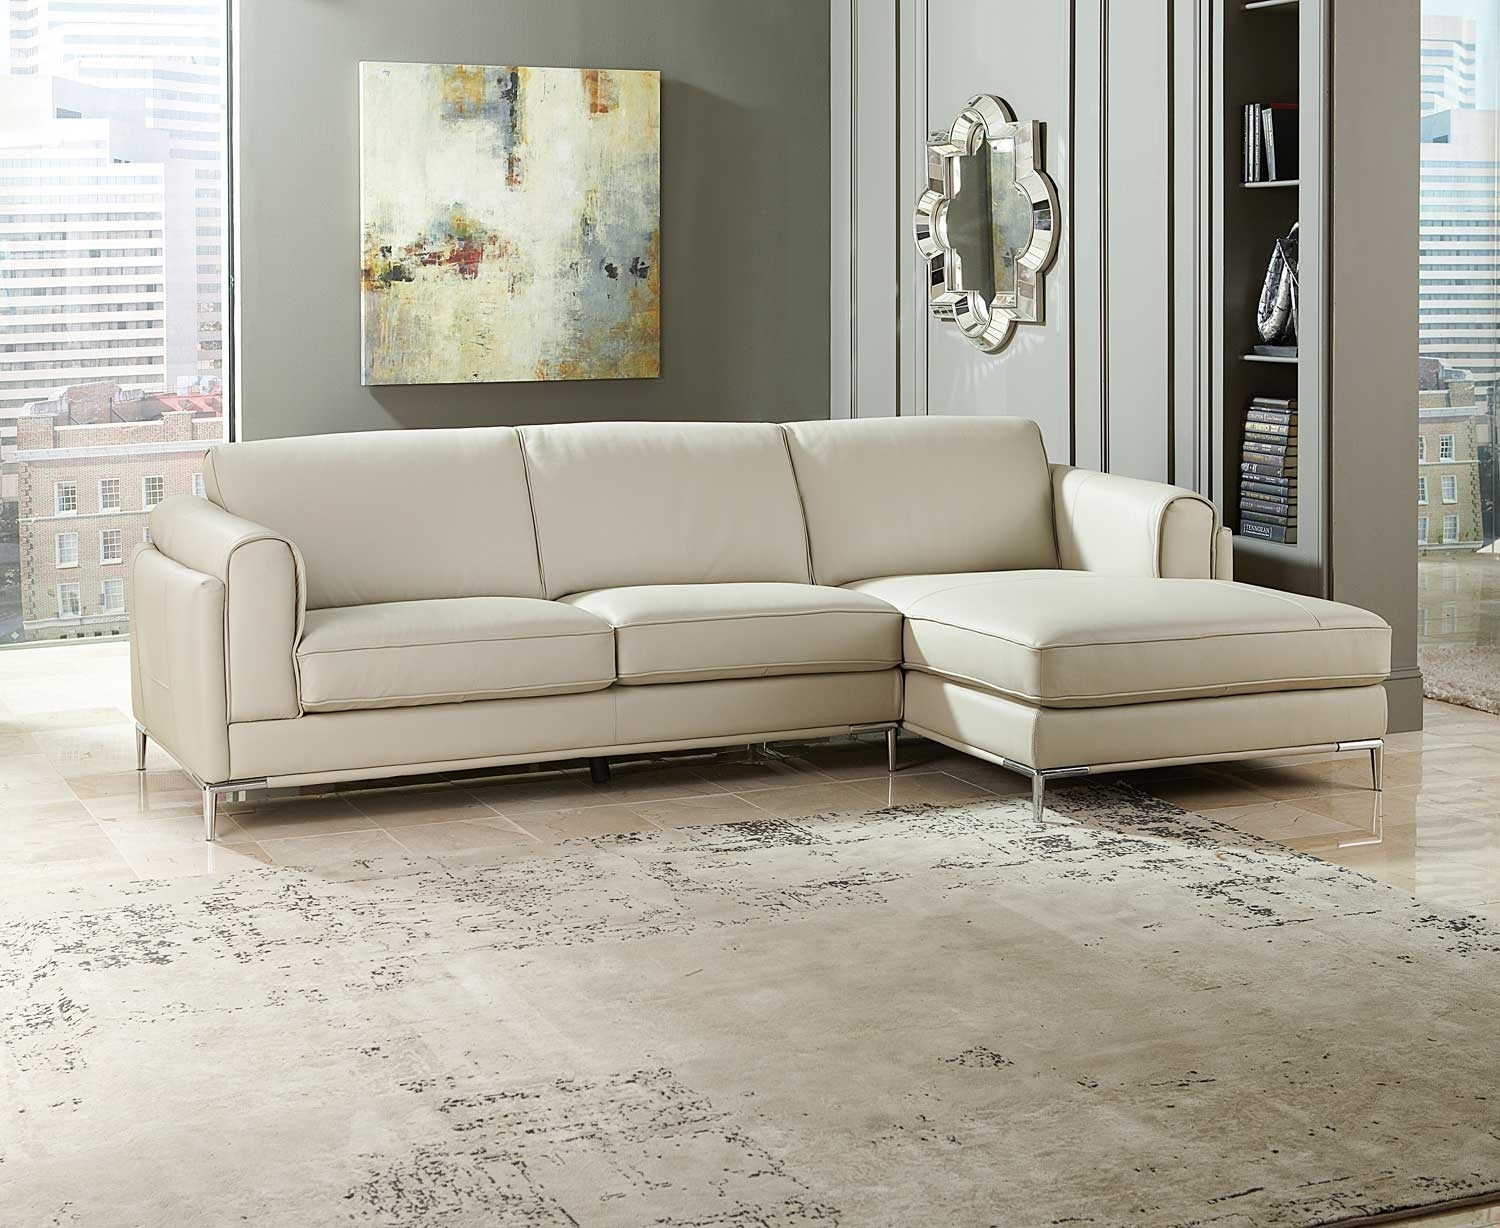 Homelegance Hugo Sectional Sofa – Beige Top Grain Leather & Split Throughout Beige Sectional Sofas (View 8 of 10)